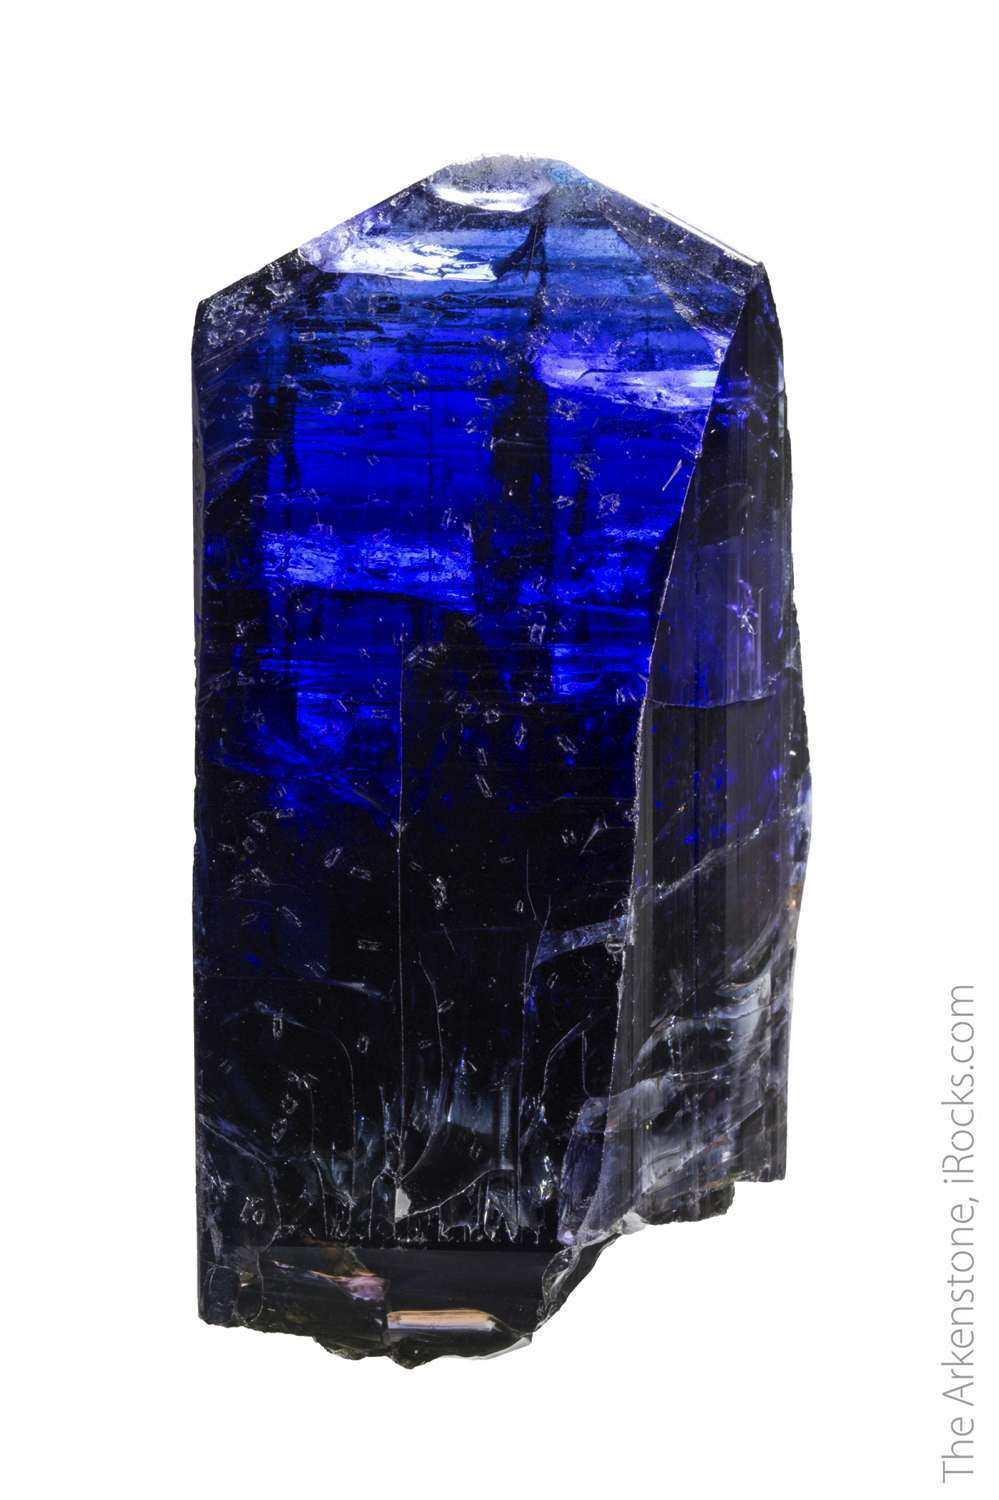 This massive tanzanite crystal measures 10 cm tall weighs pound 388